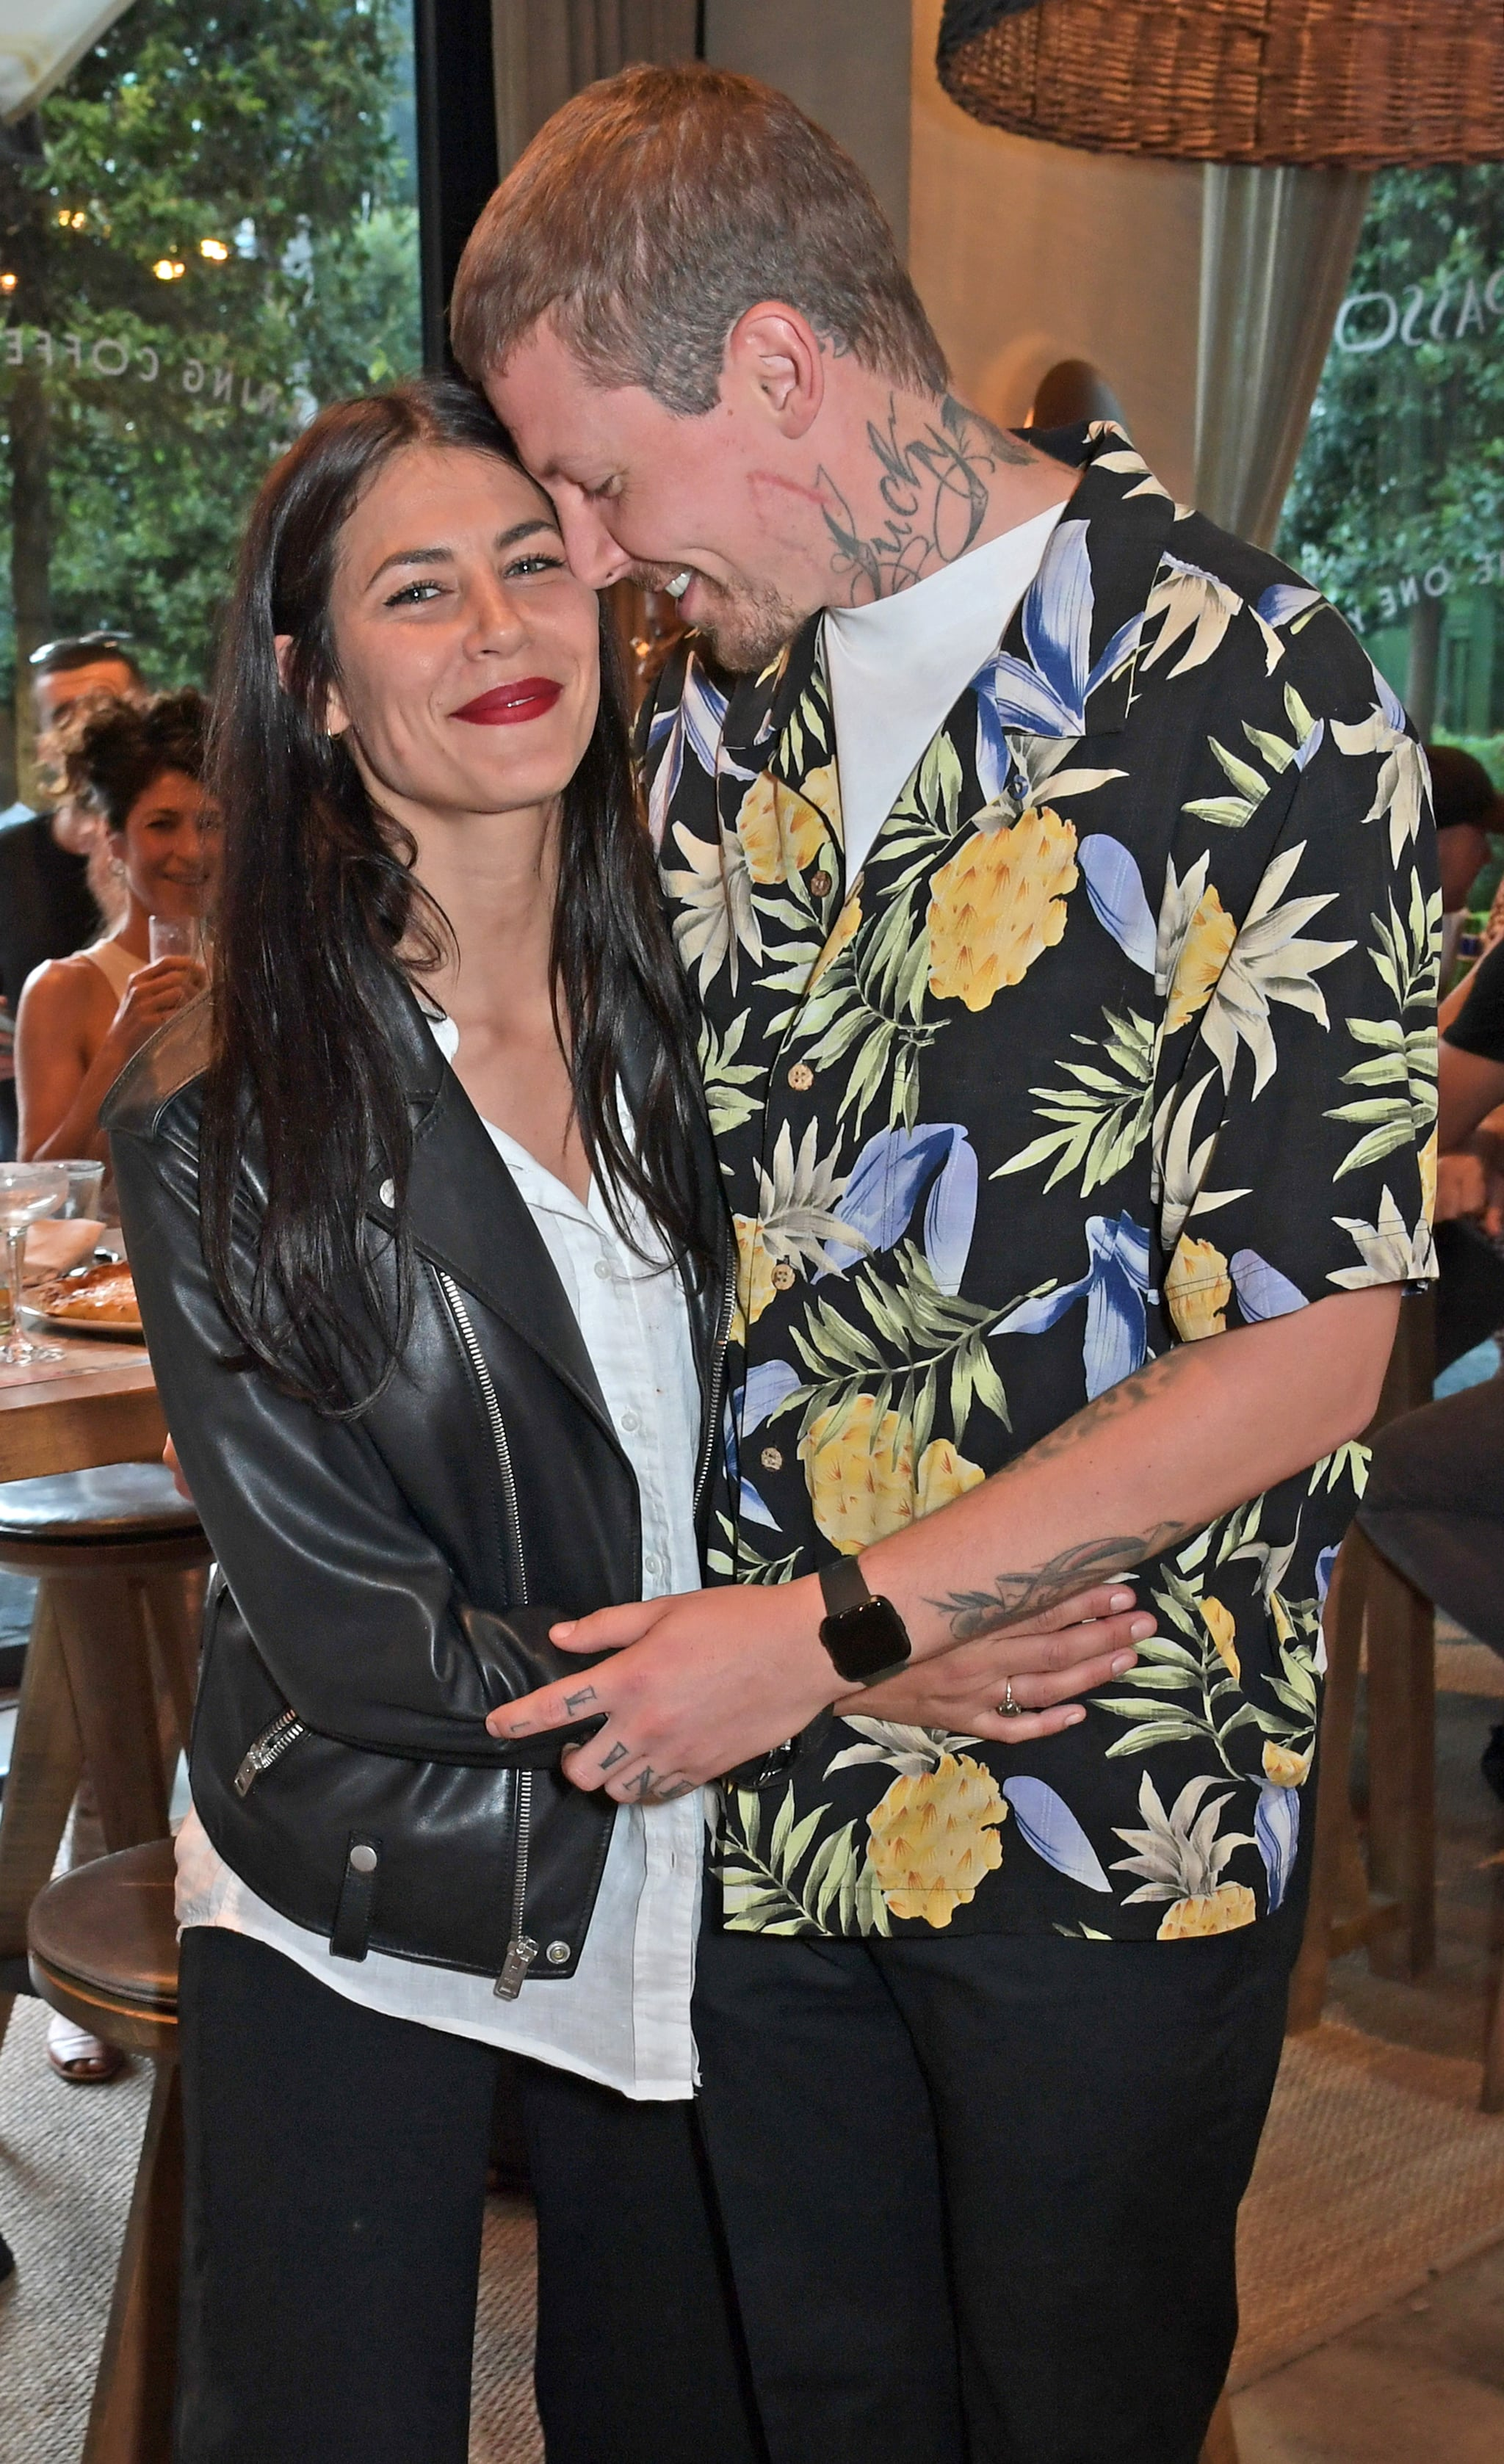 LONDON, ENGLAND - JULY 17:  Karima McAdams and Professor Green attend the launch of Giz & Green Pizza Pies Pop-Up at Passo on July 17, 2020 in London, England. (Photo by David M. Benett/Dave Benett/Getty Images for PASSO)